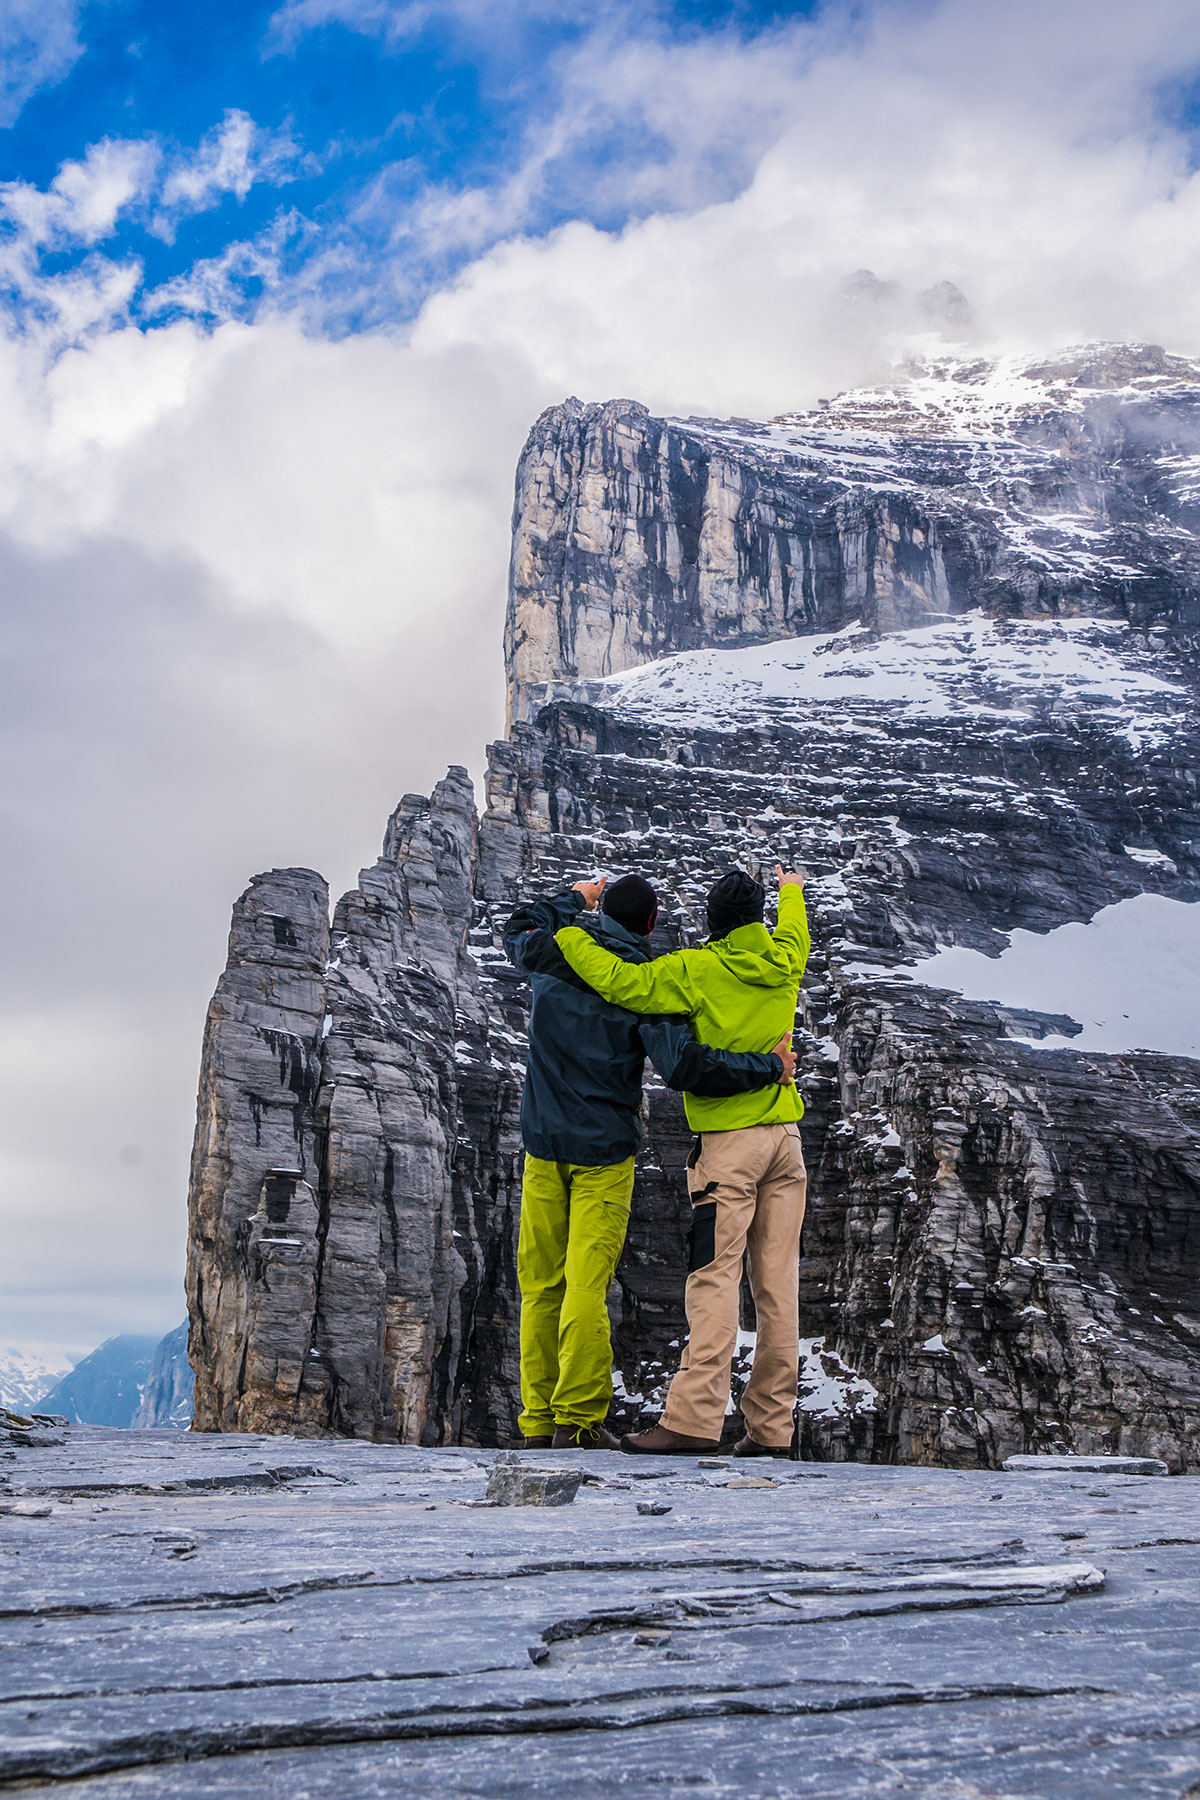 Mathias Weck and Felix Mehne before trying to ascent the Eiger north face on the route